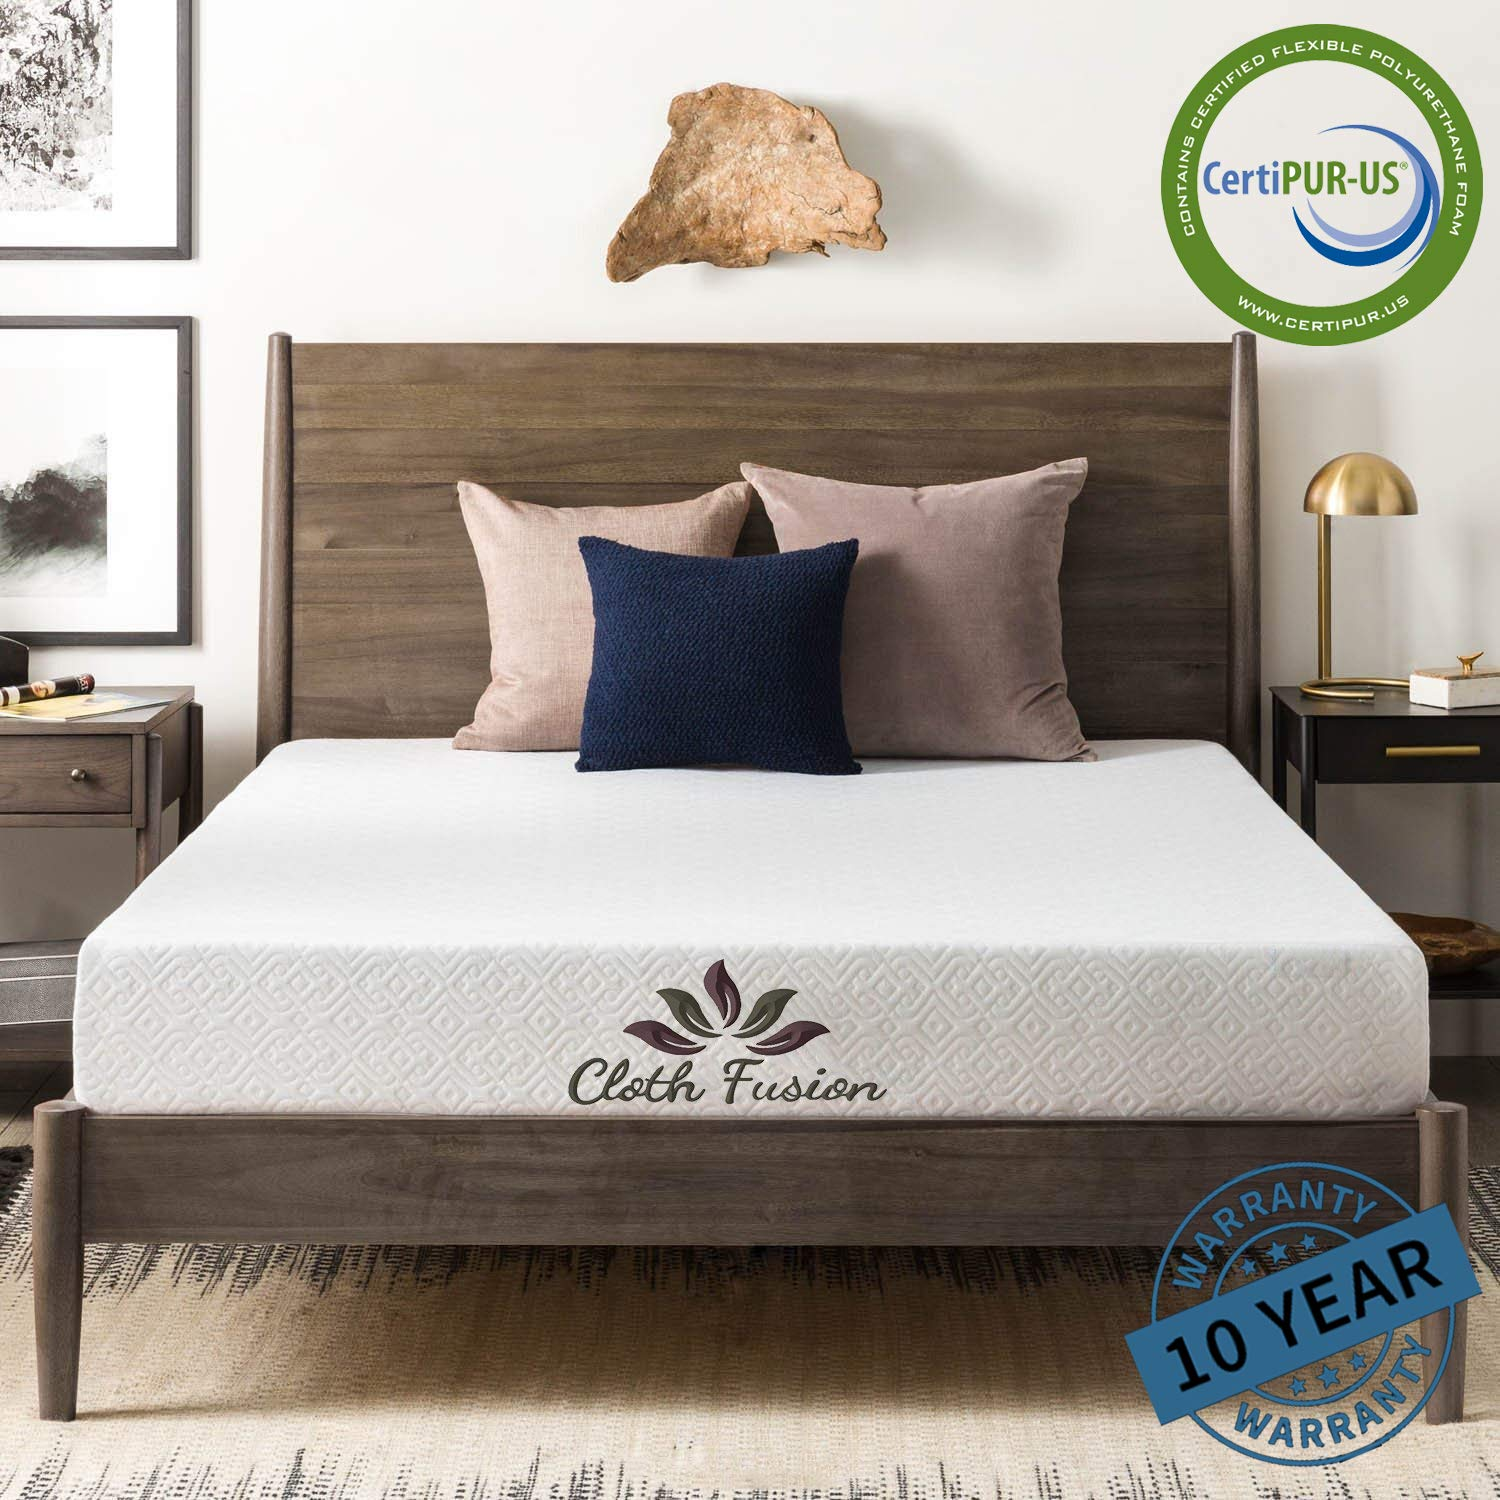 Cloth Fusion Furton Cooling Gel Memory Foam 6 inch Mattress-72X36 inch